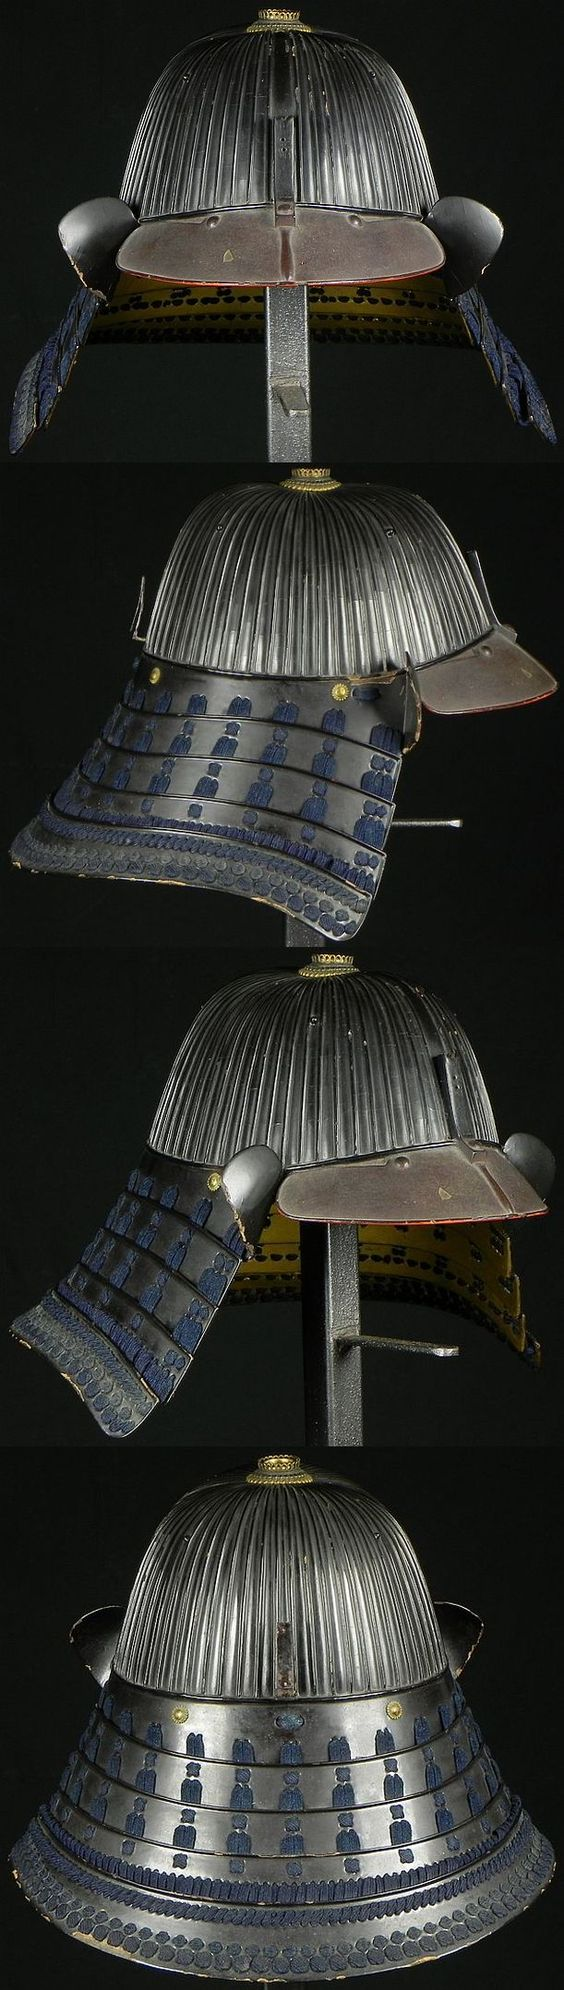 62 plate suji bachi kabuto. School:Saotome. Signature:Joshu Ju Iyenari, first half of the Edo period, 2.6kg.